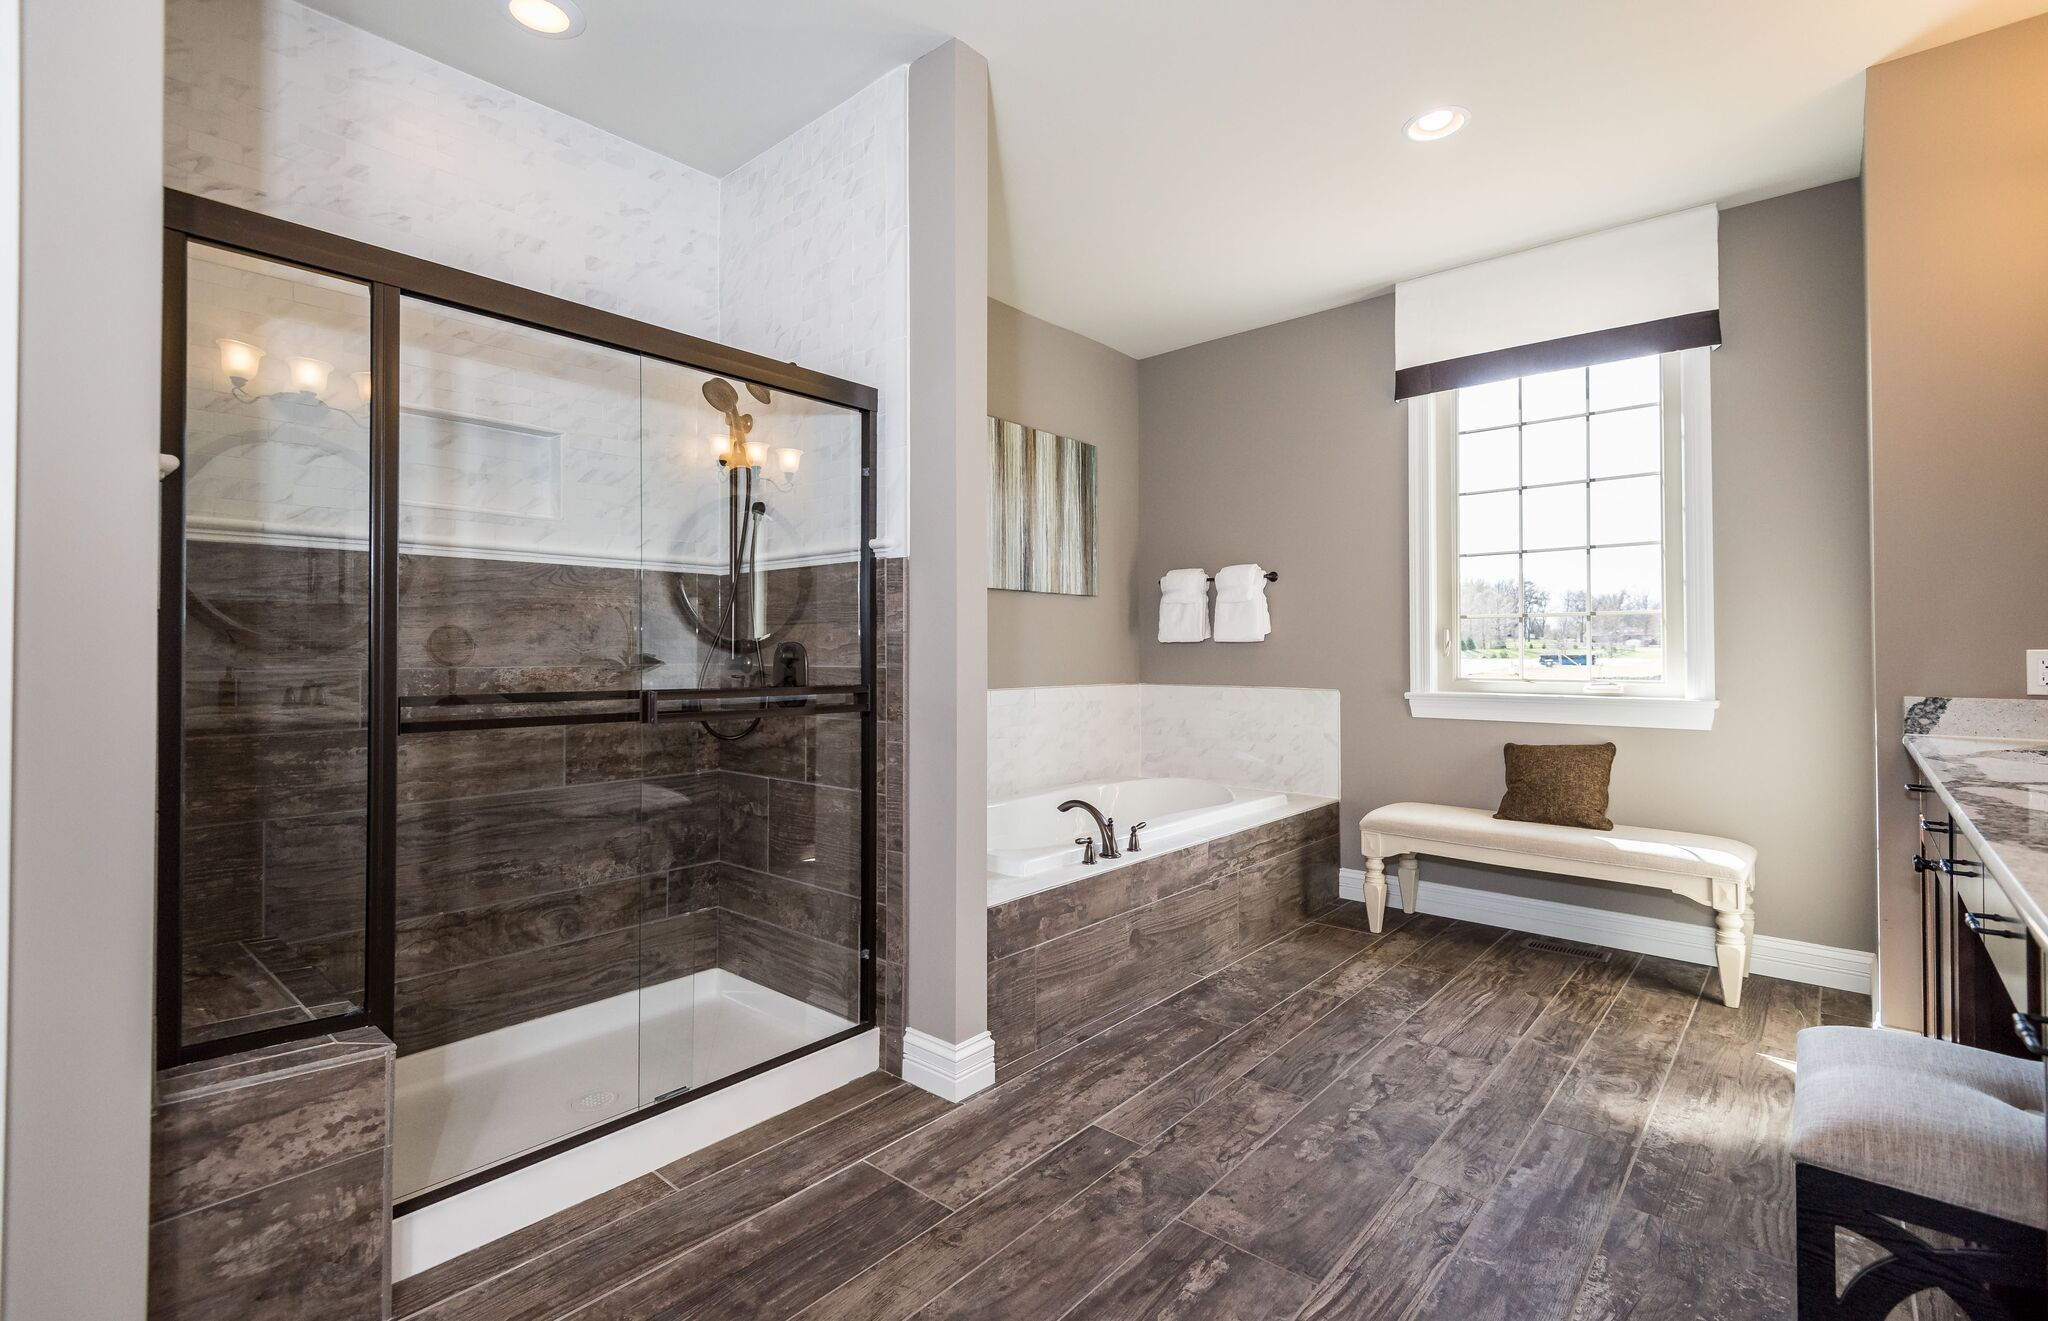 Rustic chic bathroom - Why Stop At The Floors When You Re Feeling Woodsy In This Rustic Chic Bathroom Wood And Glass Come Together Stunningly